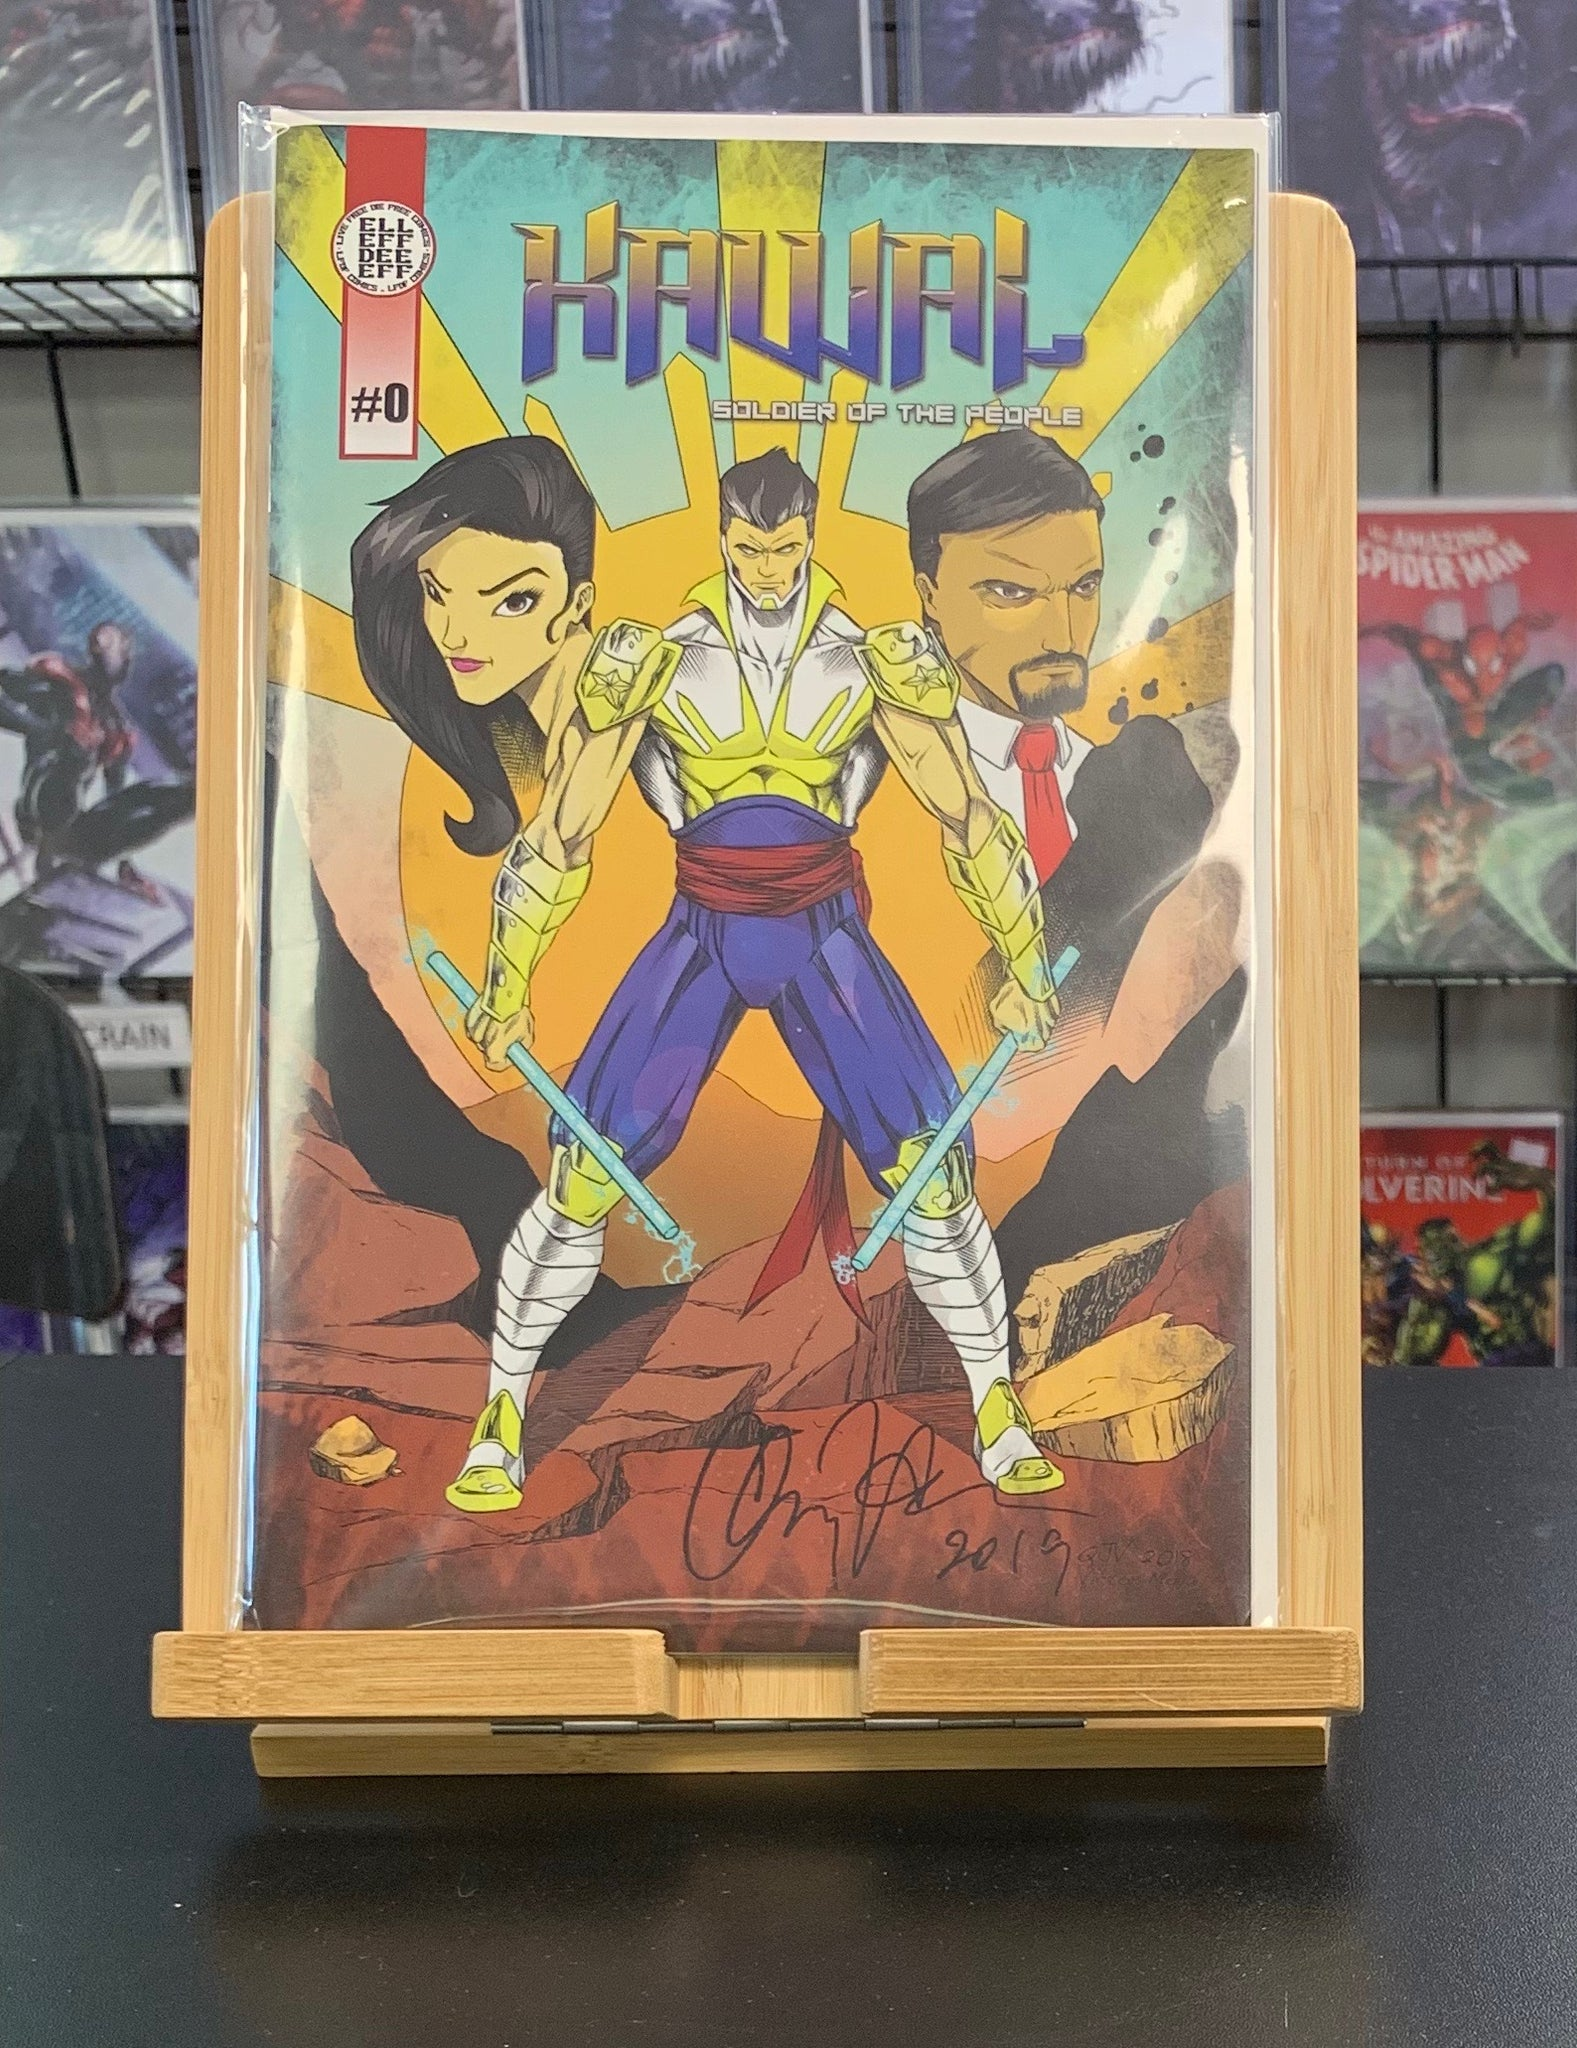 Kawal #0 Signed by Quincy Victoria